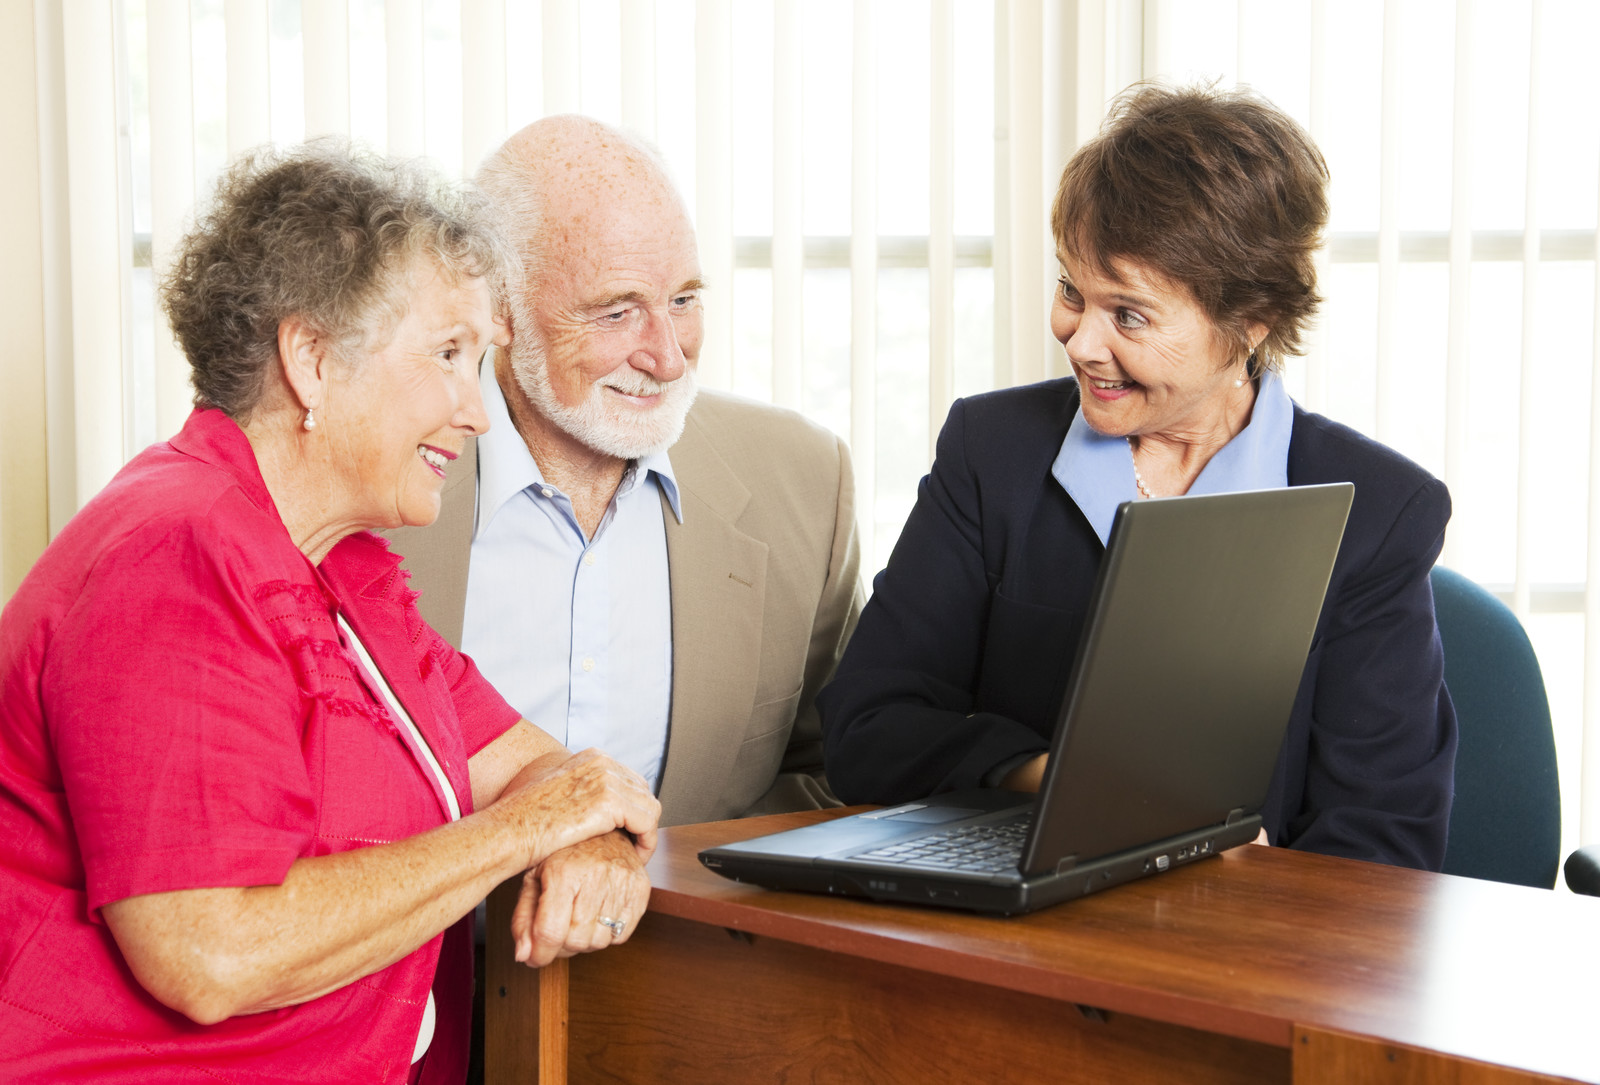 Persuasive sales woman pitches an investment opportunity to a senior couple